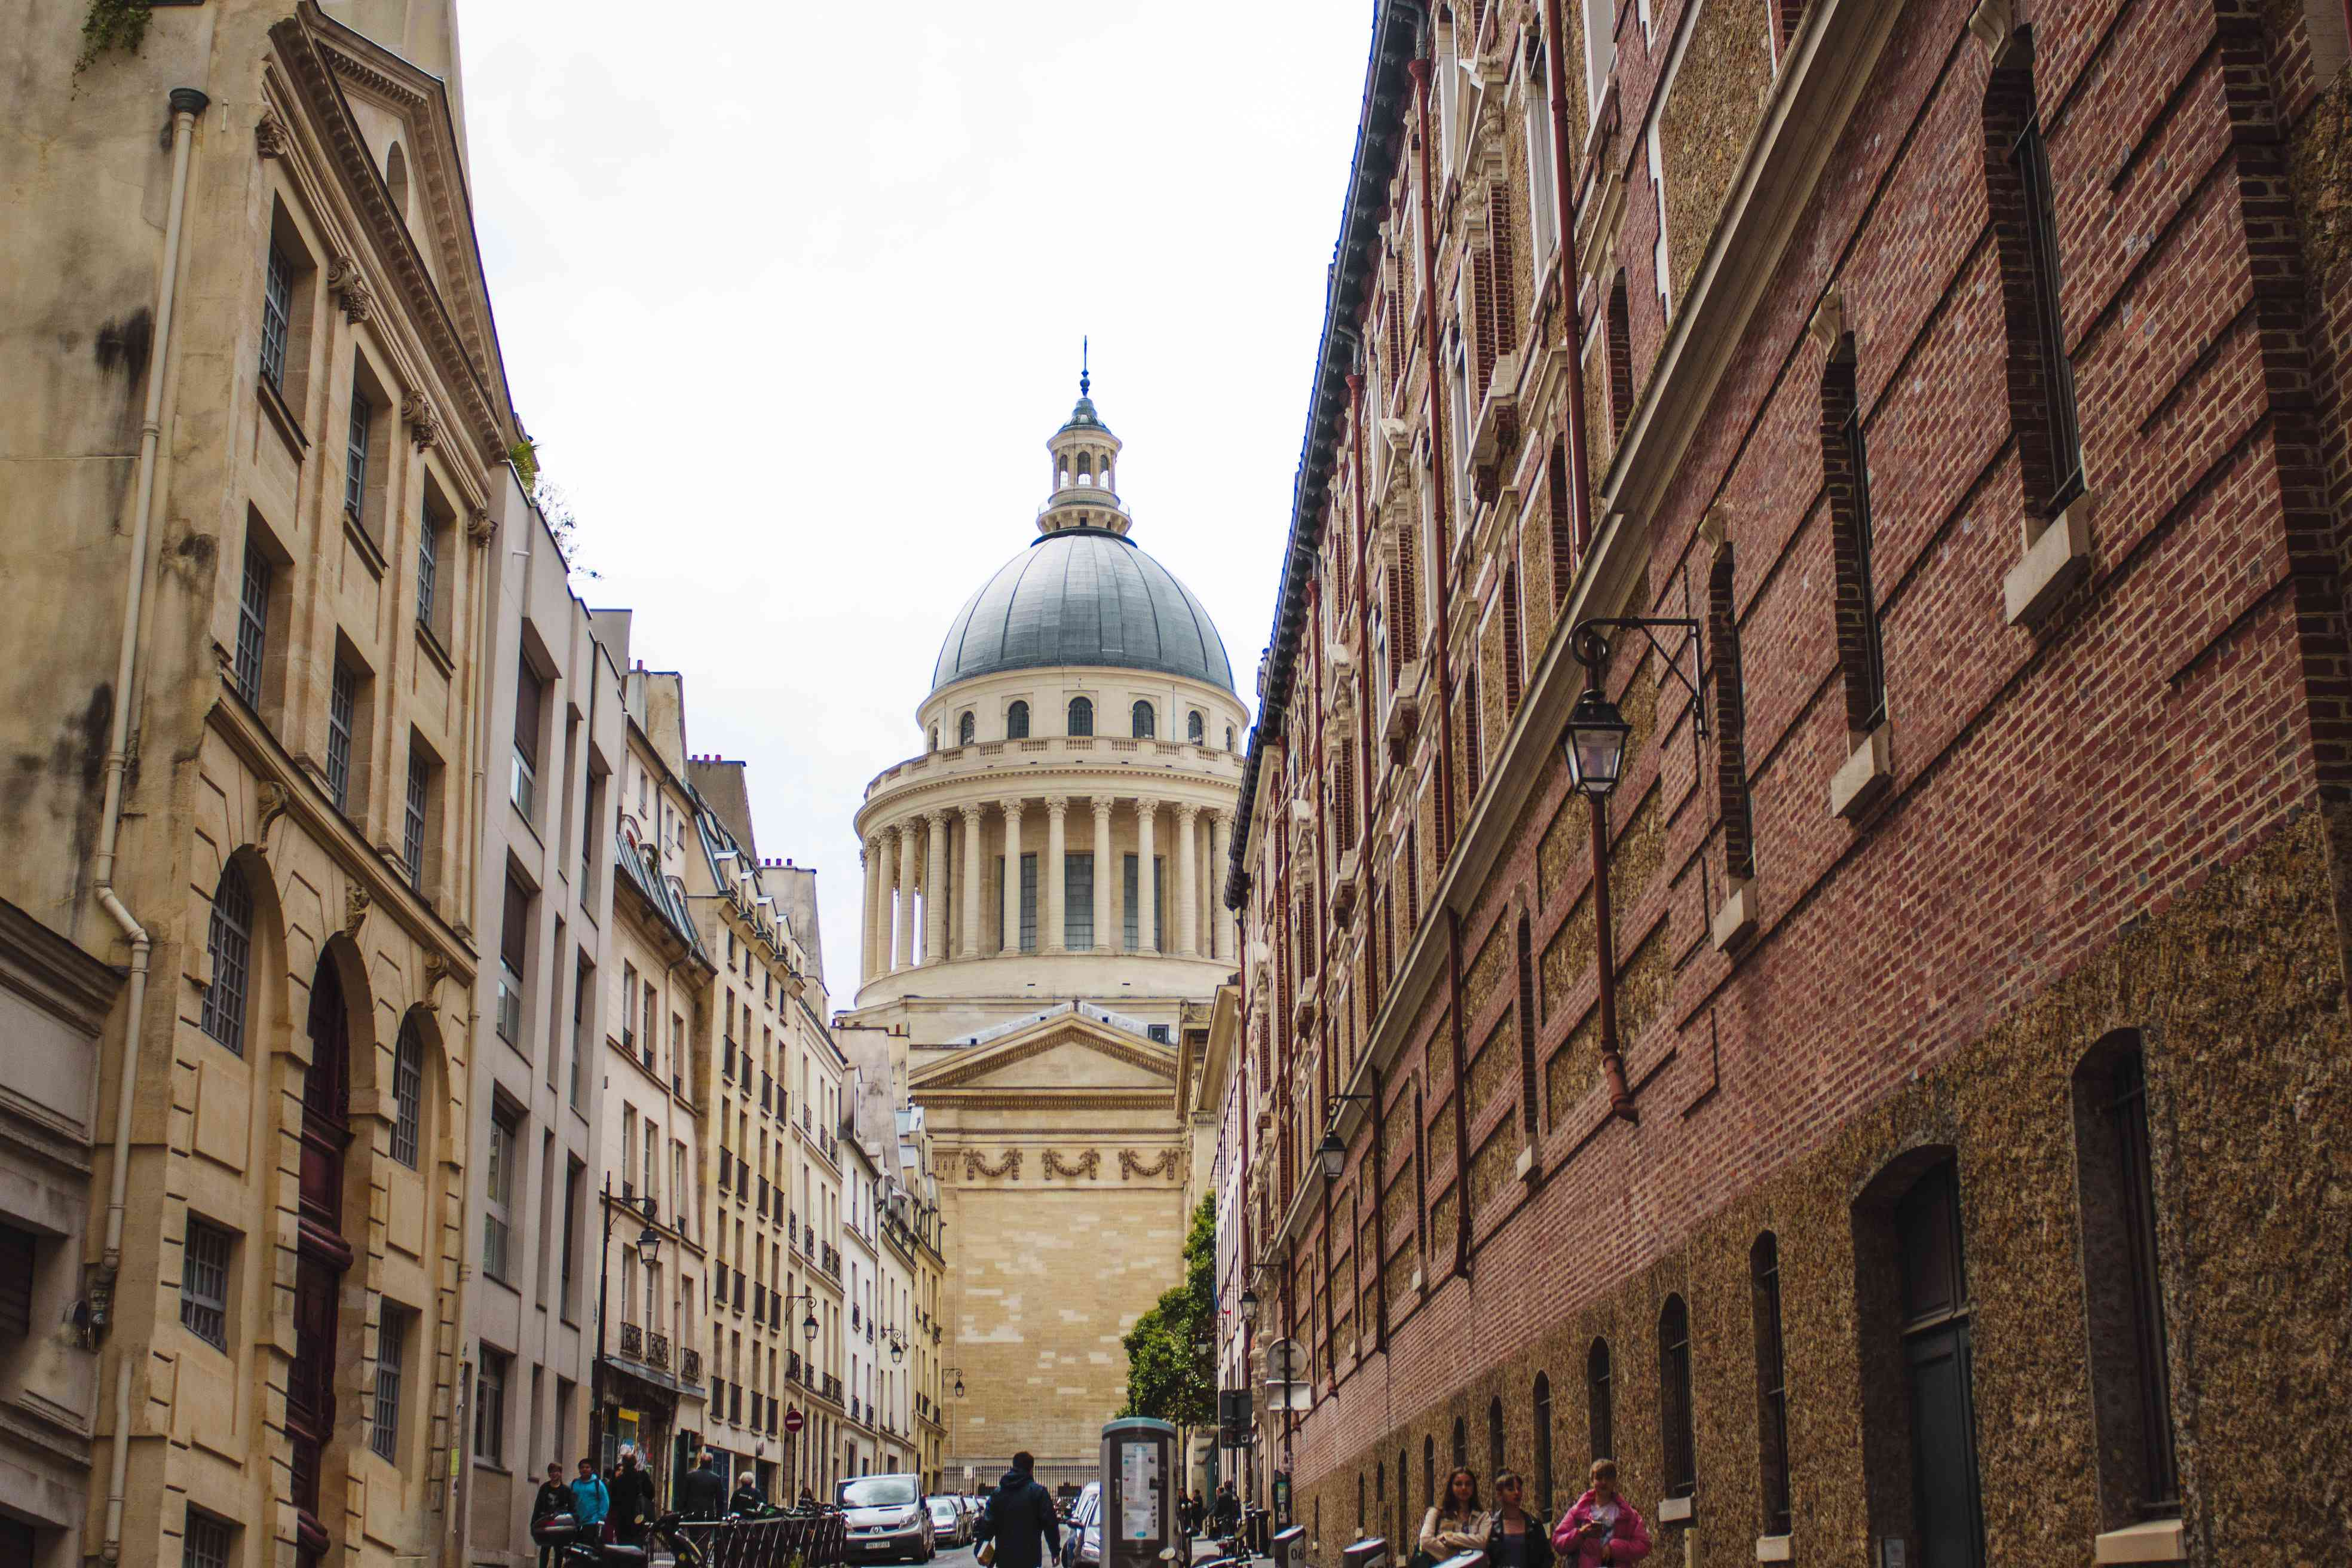 Streets leading up to the Pantheon